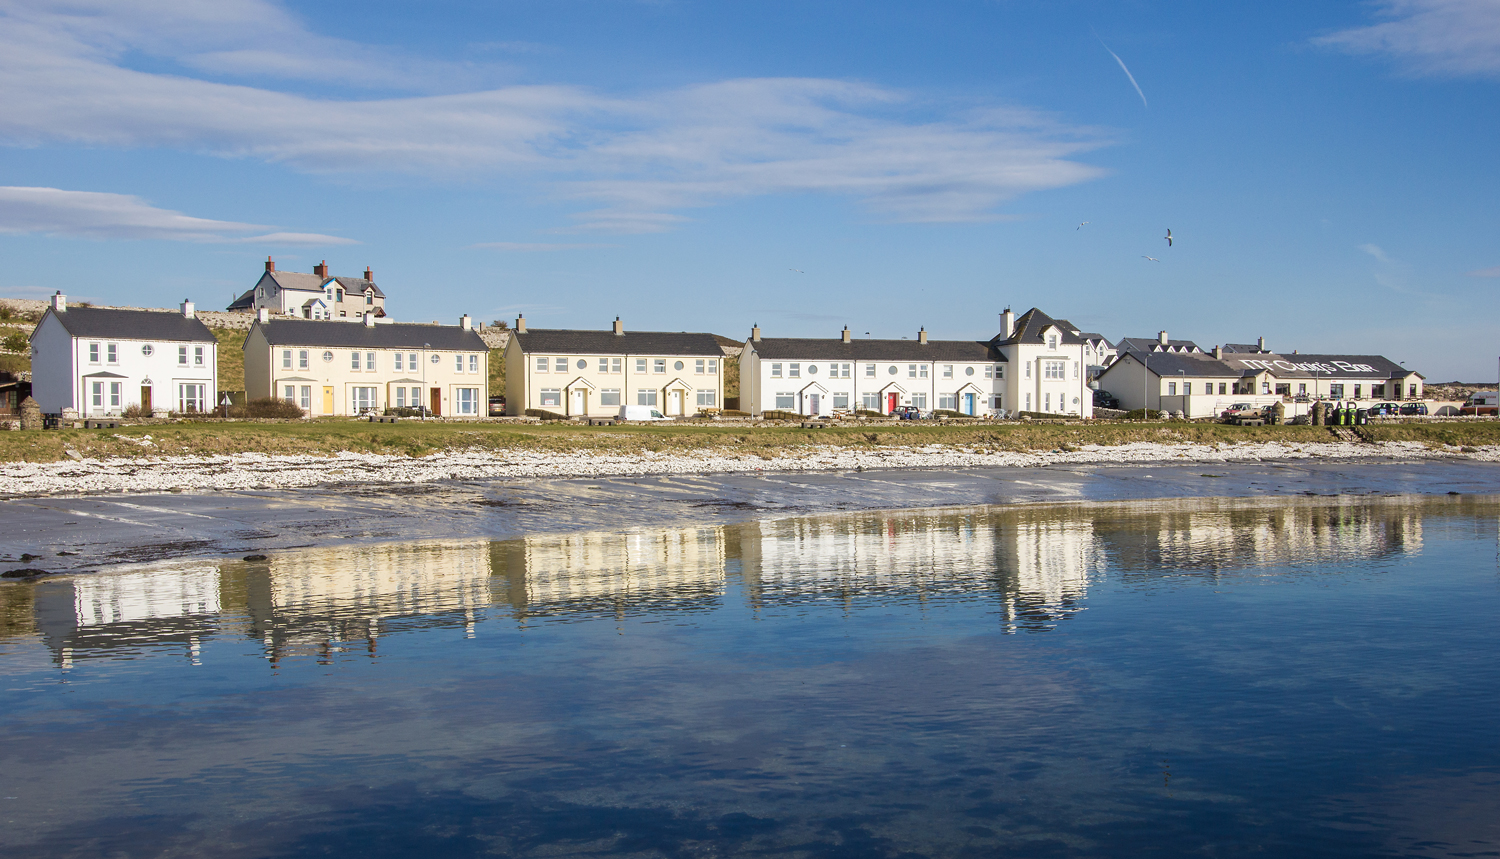 Reflections of Rathlin's cottages and the village pub, McCuaig's.